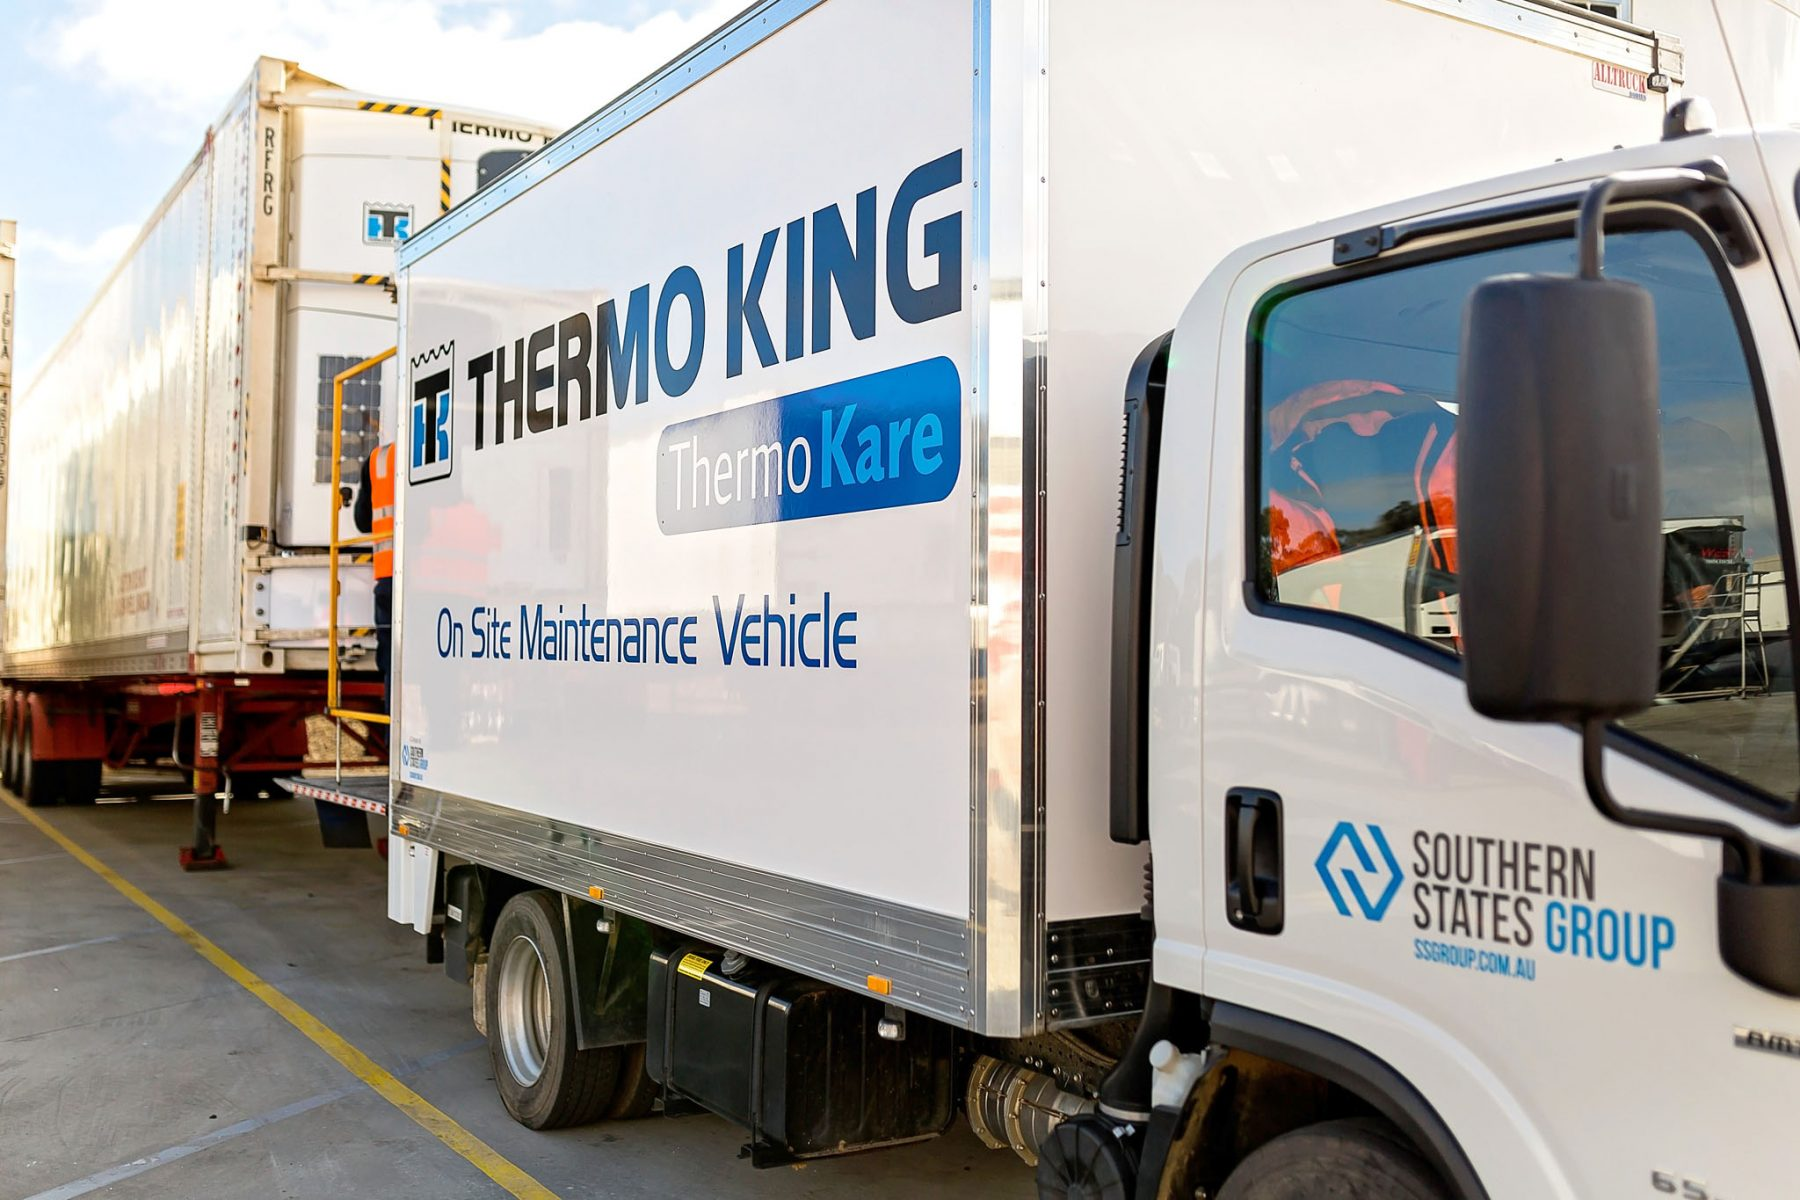 Thermo King On Site Maintenance Vehicle